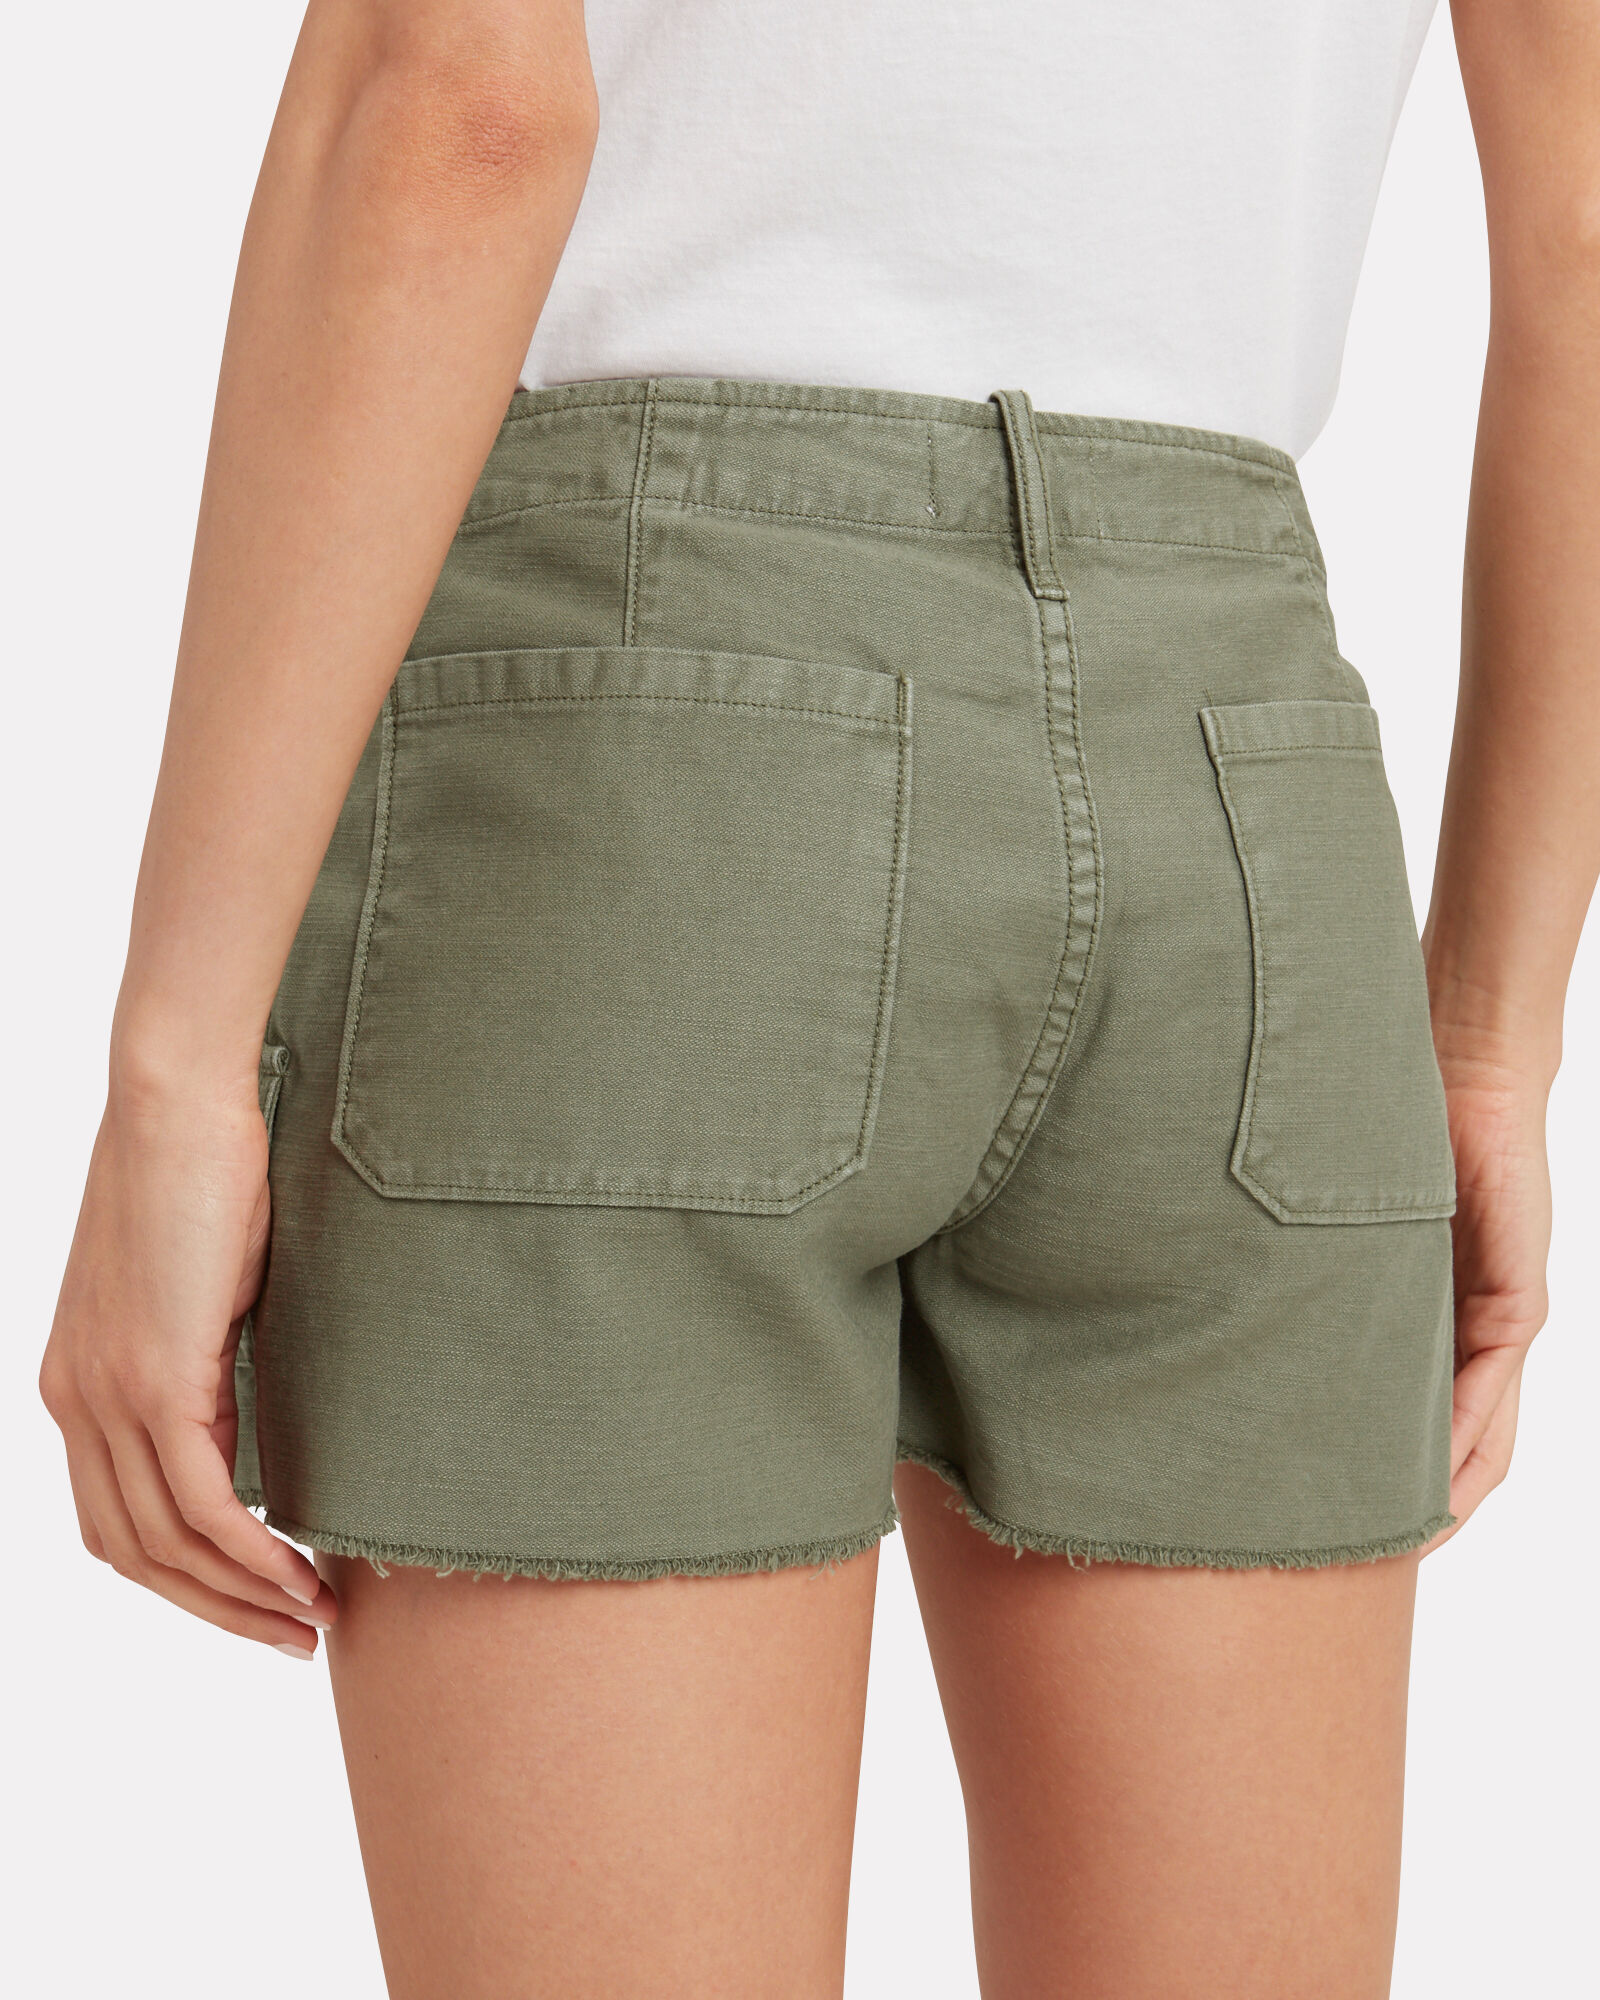 Service Cut-Off Cotton Shorts, OLIVE/ARMY, hi-res